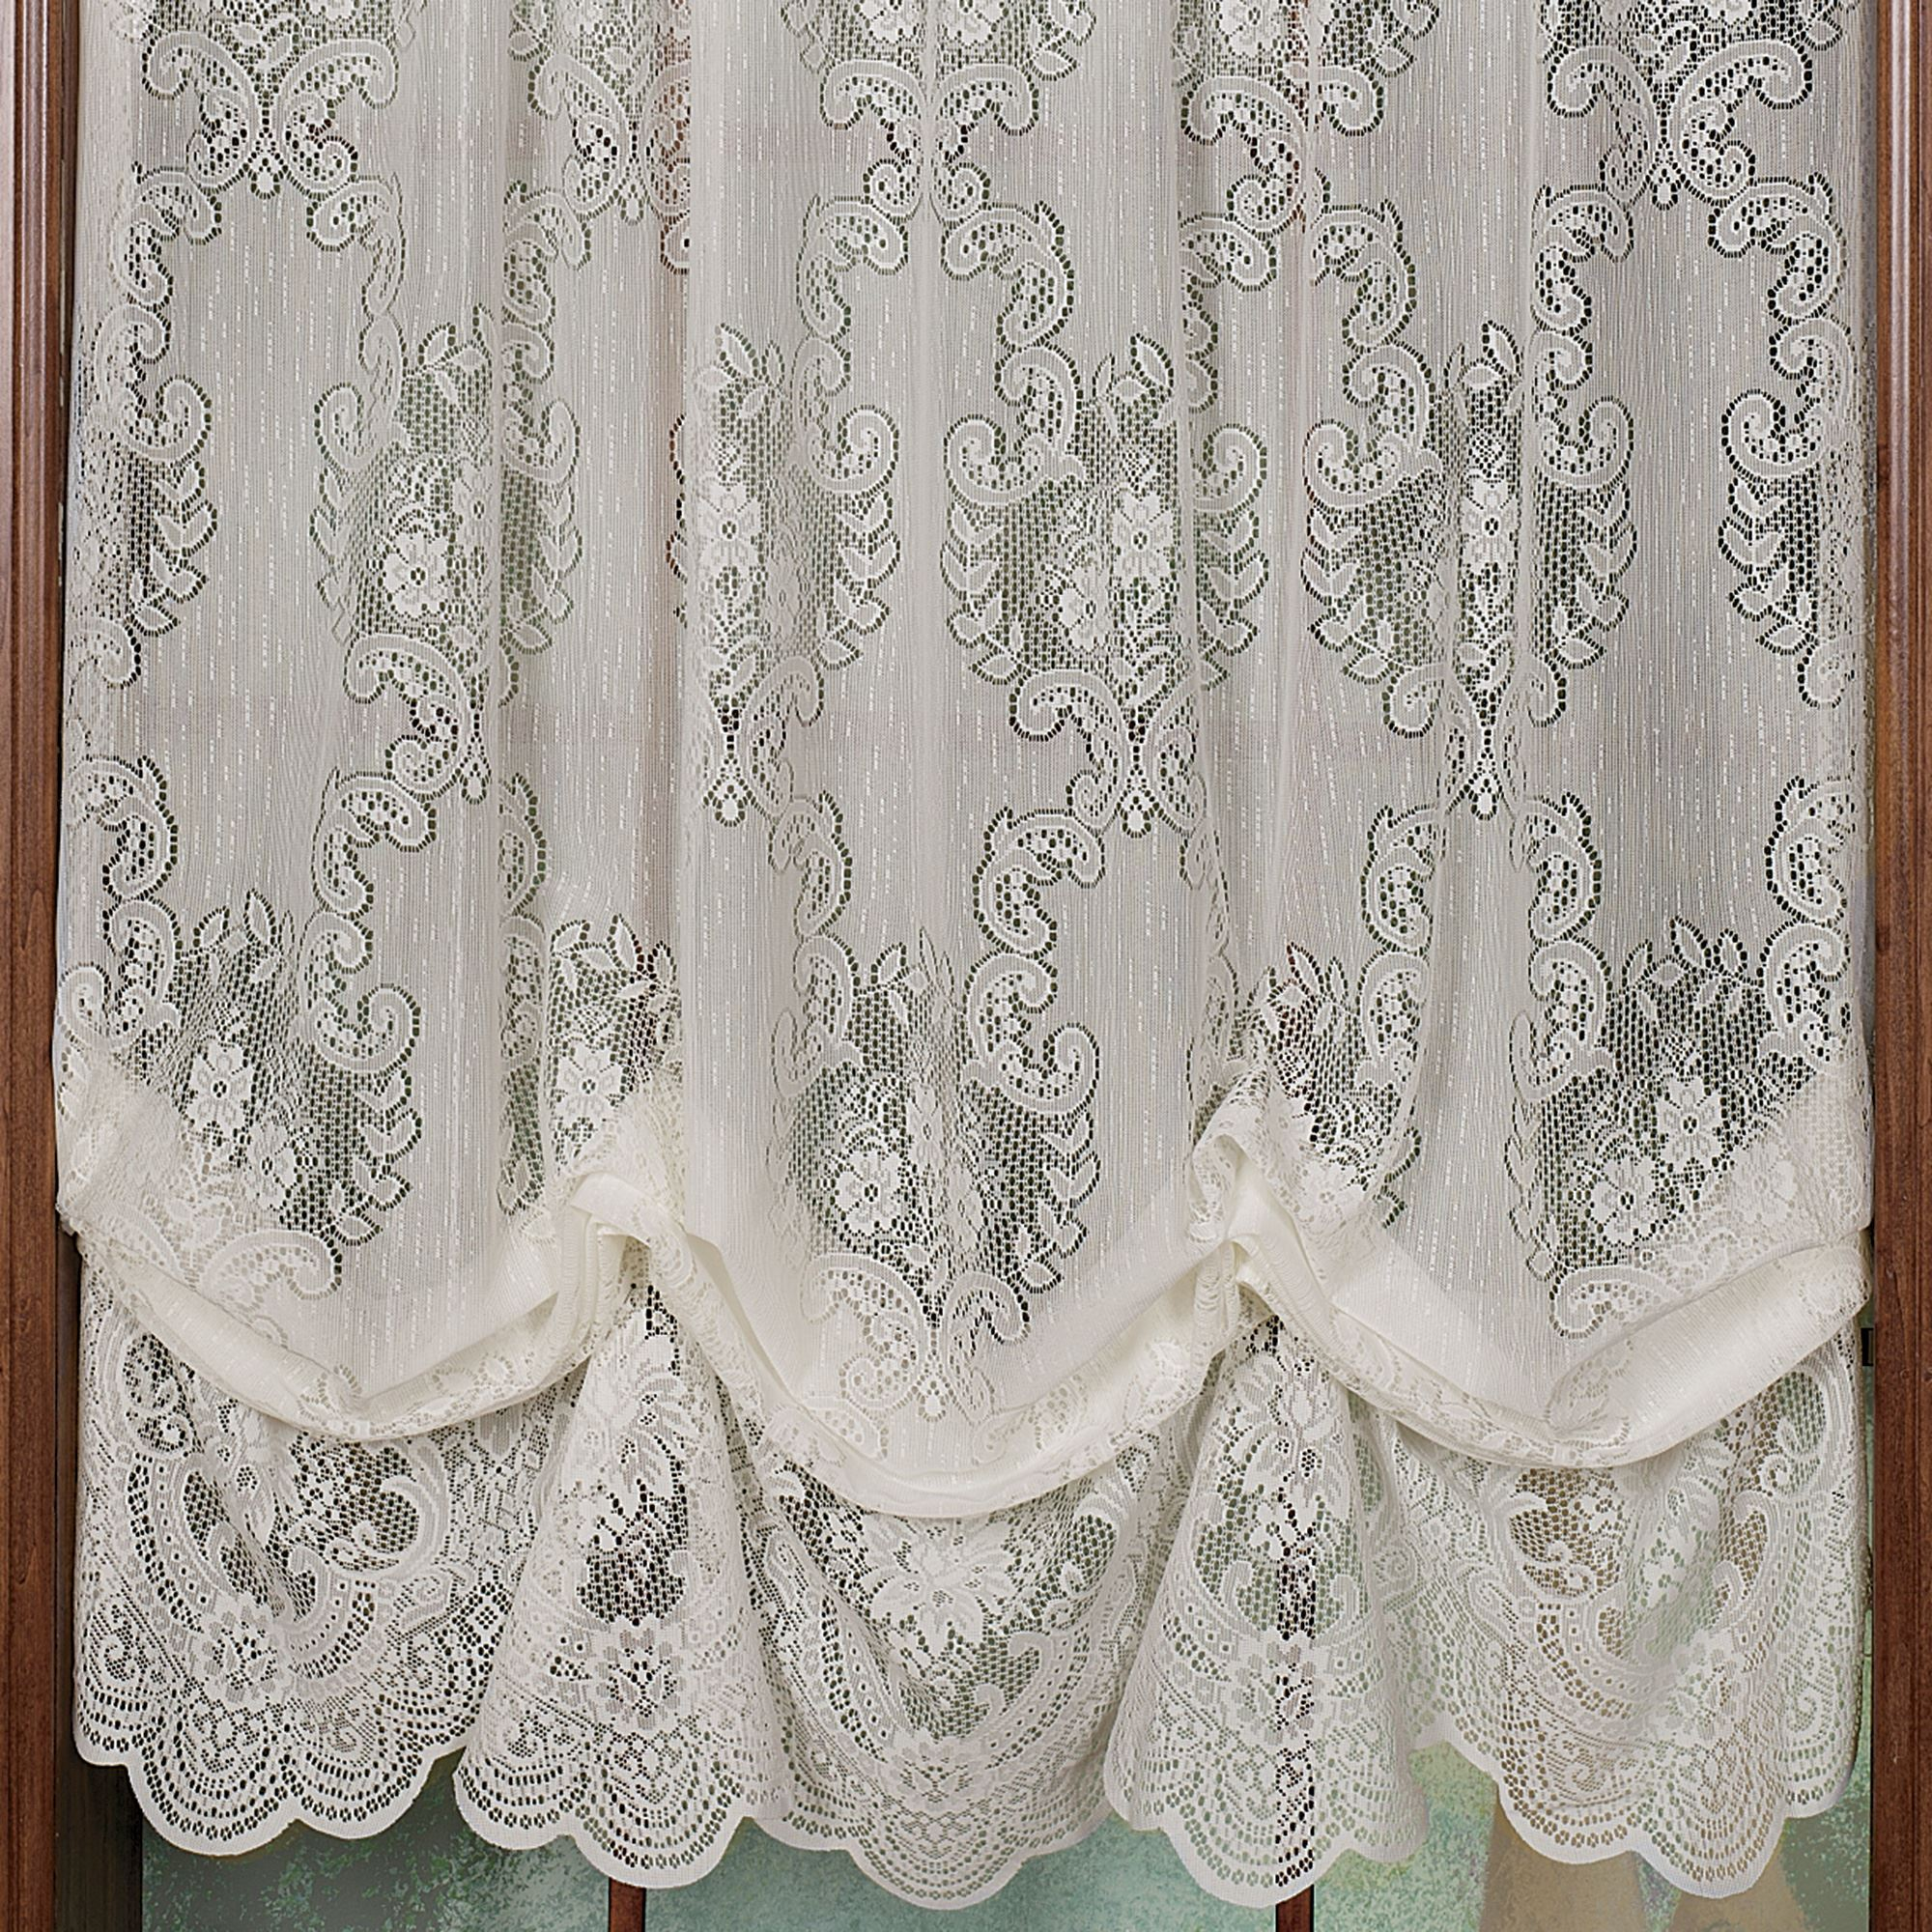 french canada curtains valance panels white antique cream window fabric lace carly kitchen battenburg pleated ecru curtain allison shower old treatments